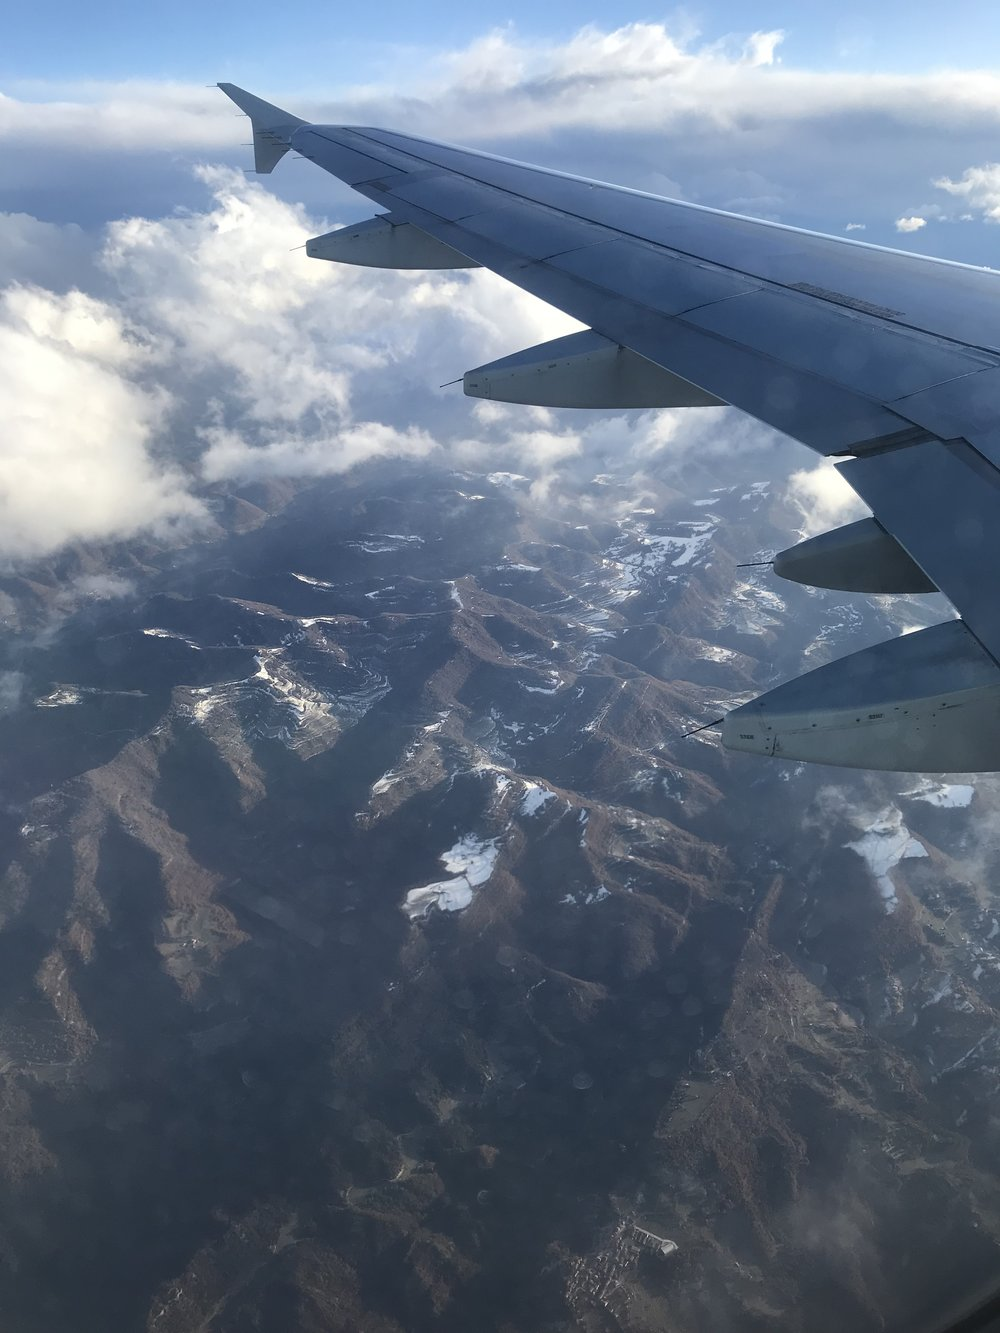 View of Mountains before landing in Barcelona